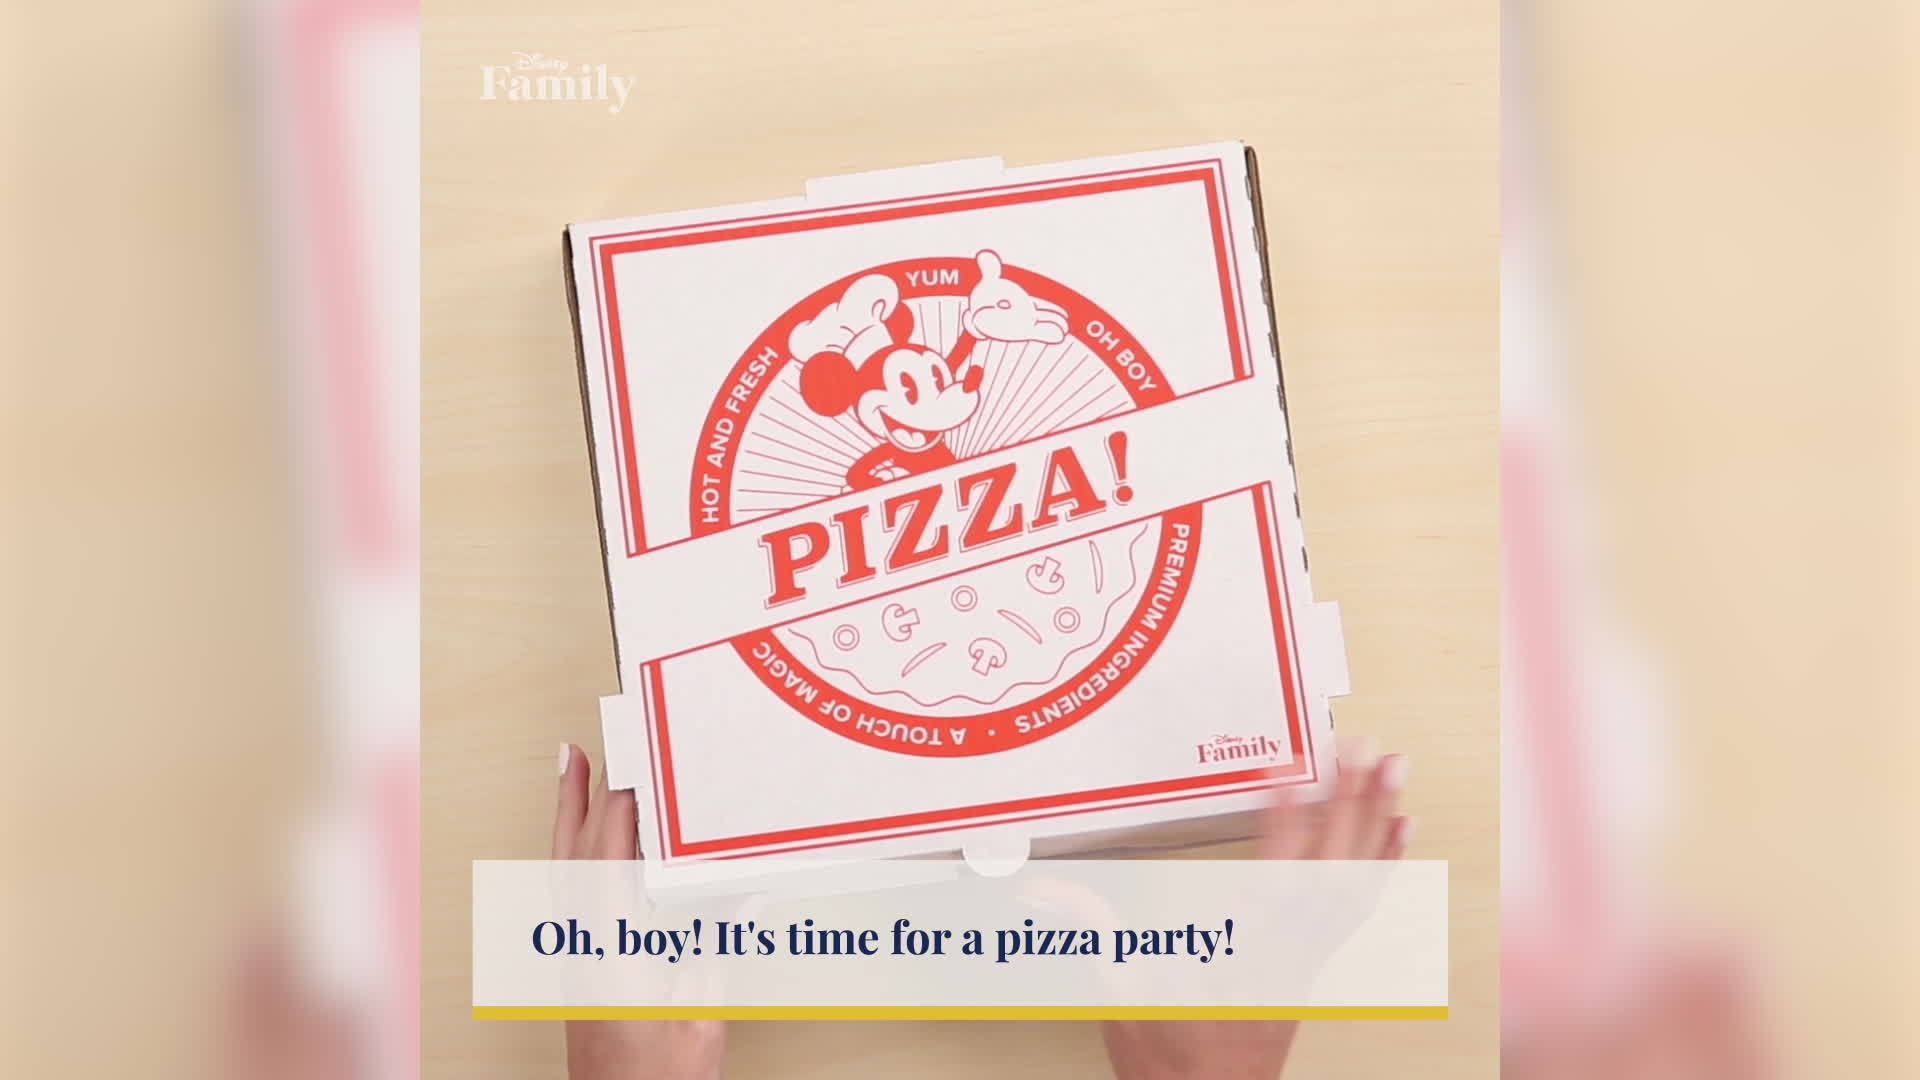 The Best Disney Pizza Recipes | Disney Eats by Disney Family